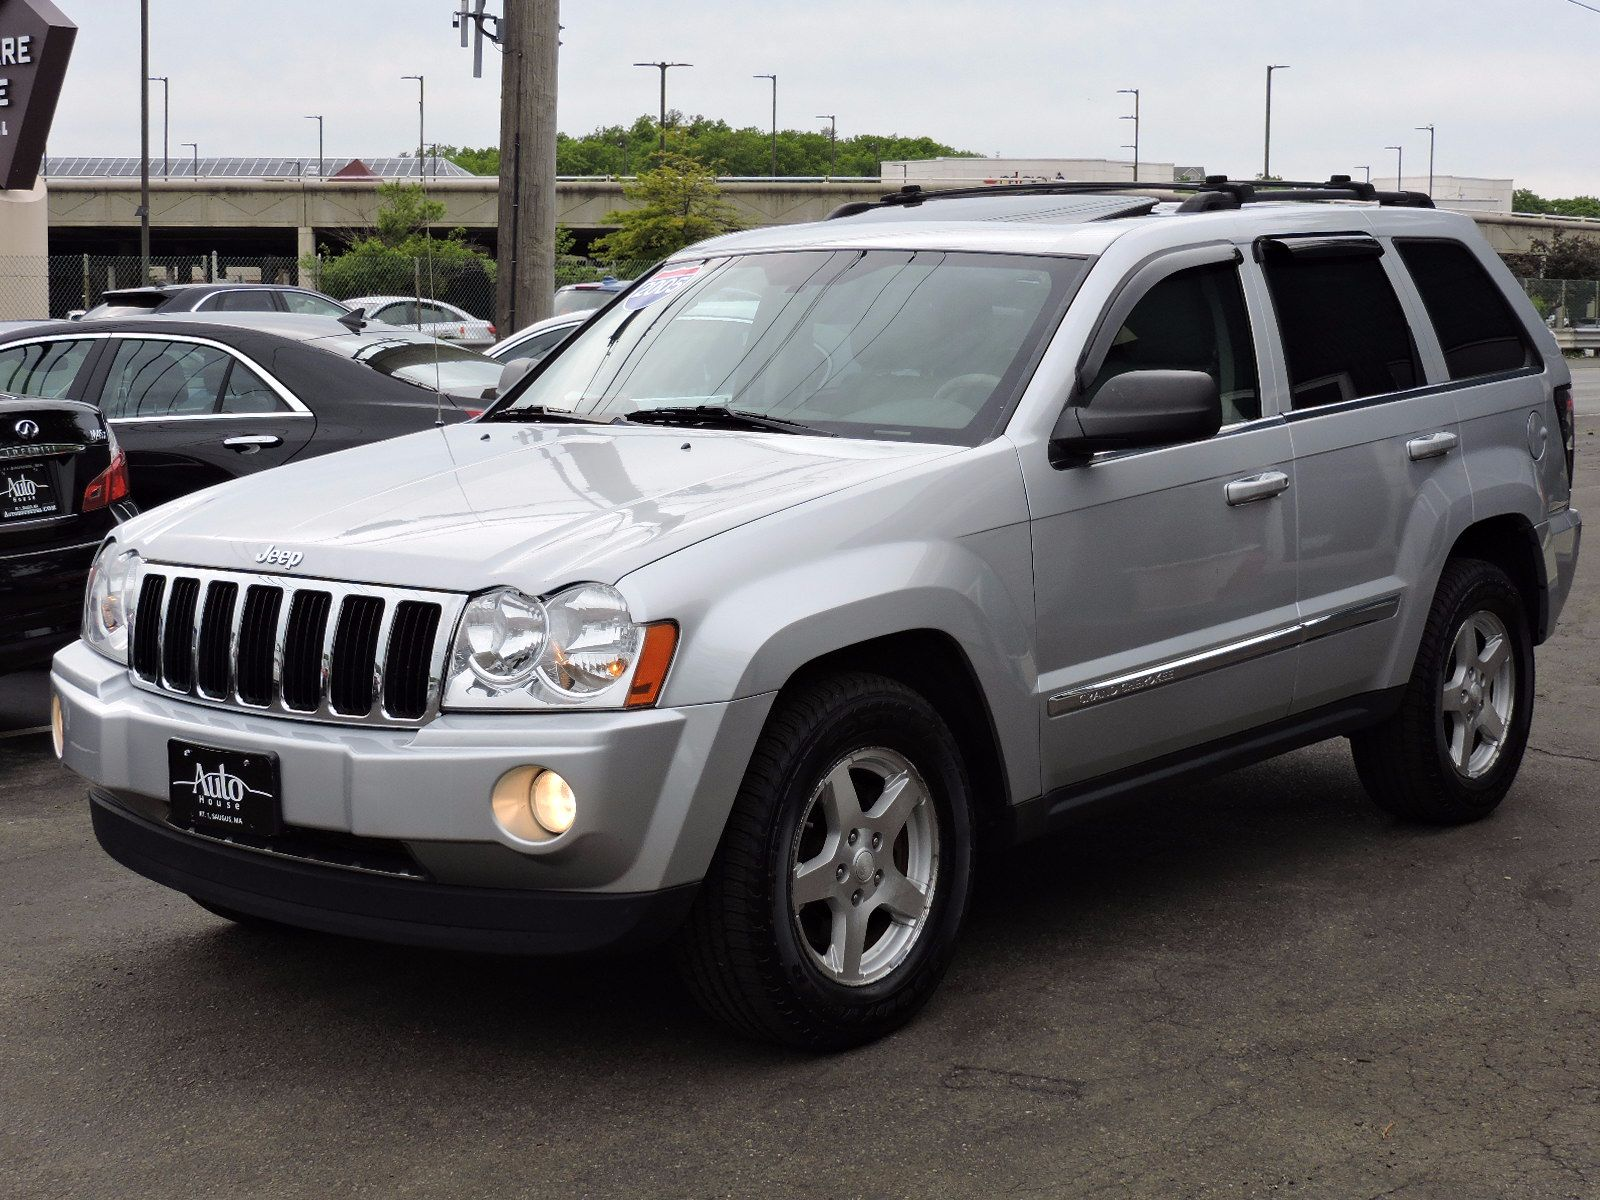 2005 Jeep Grand Cherokee All Wheel Drive - Limited Edition